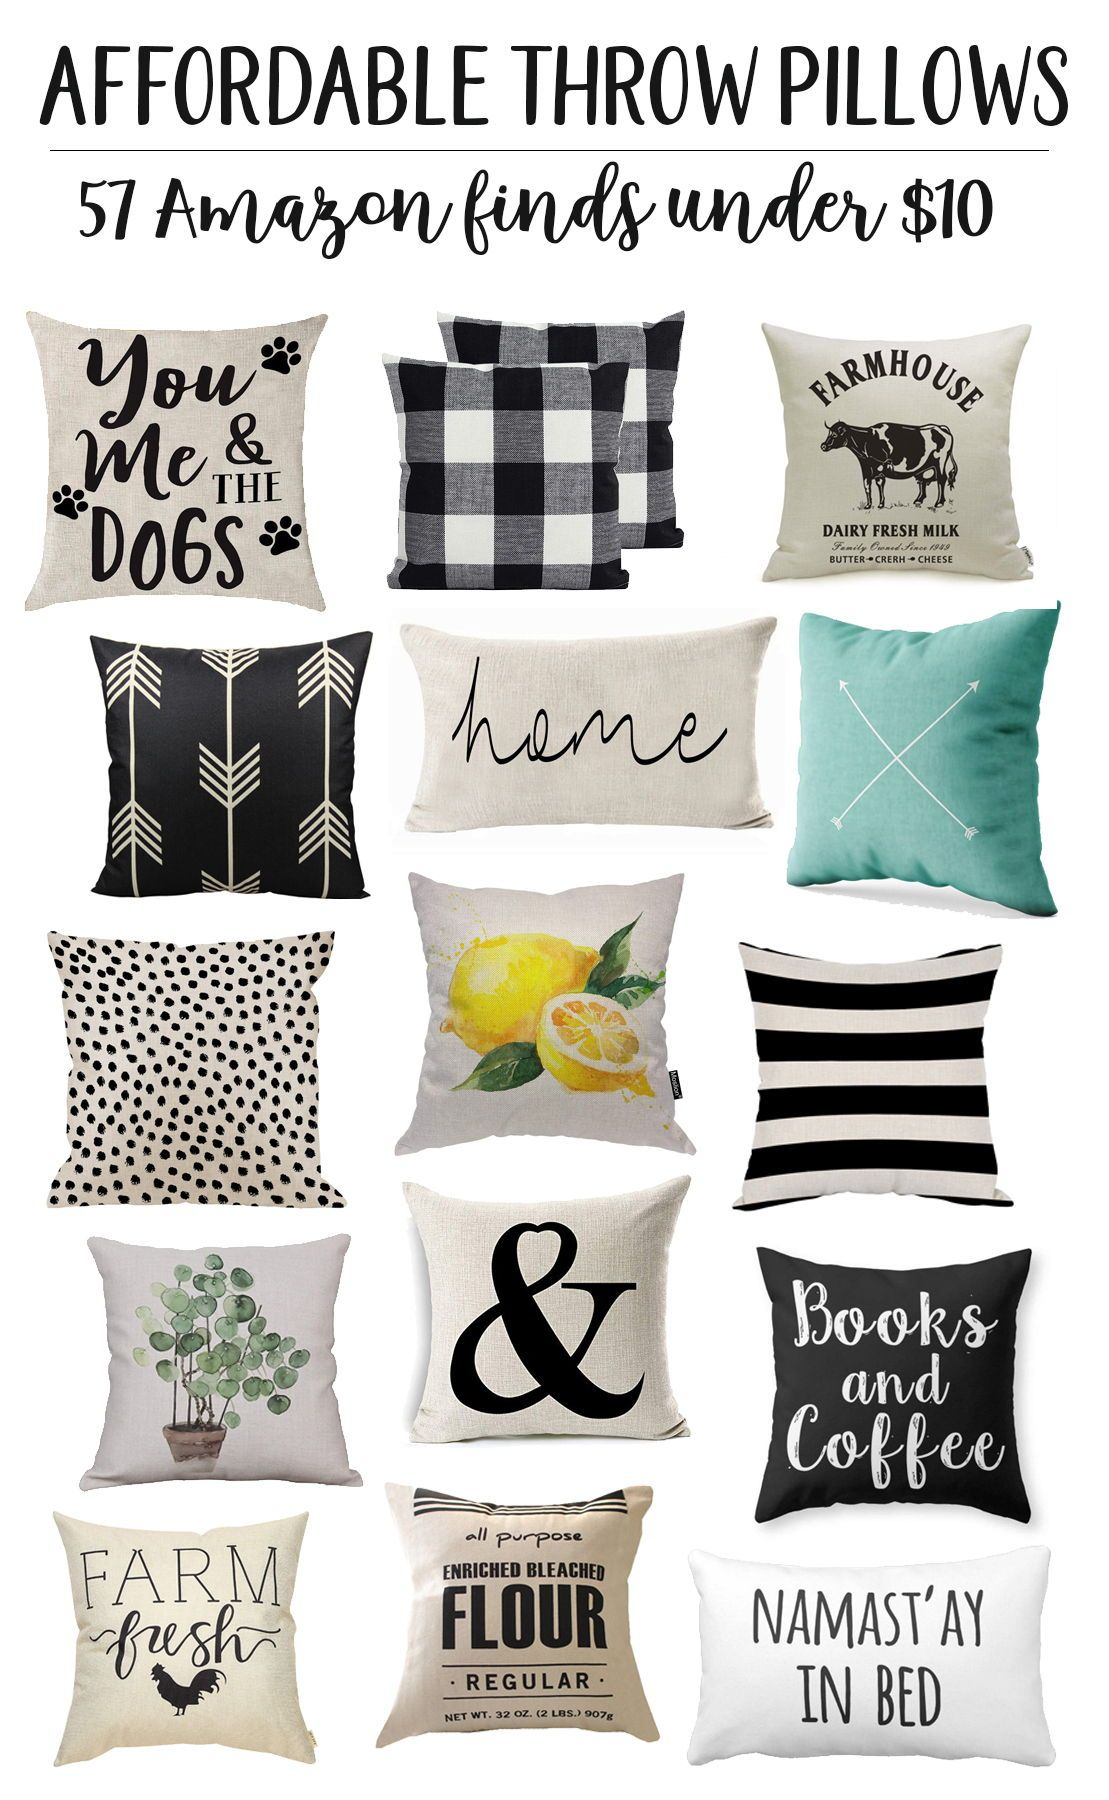 Pin By Kelsey Ferrel On Home Decor Ideas In 2020 Pillows Throw